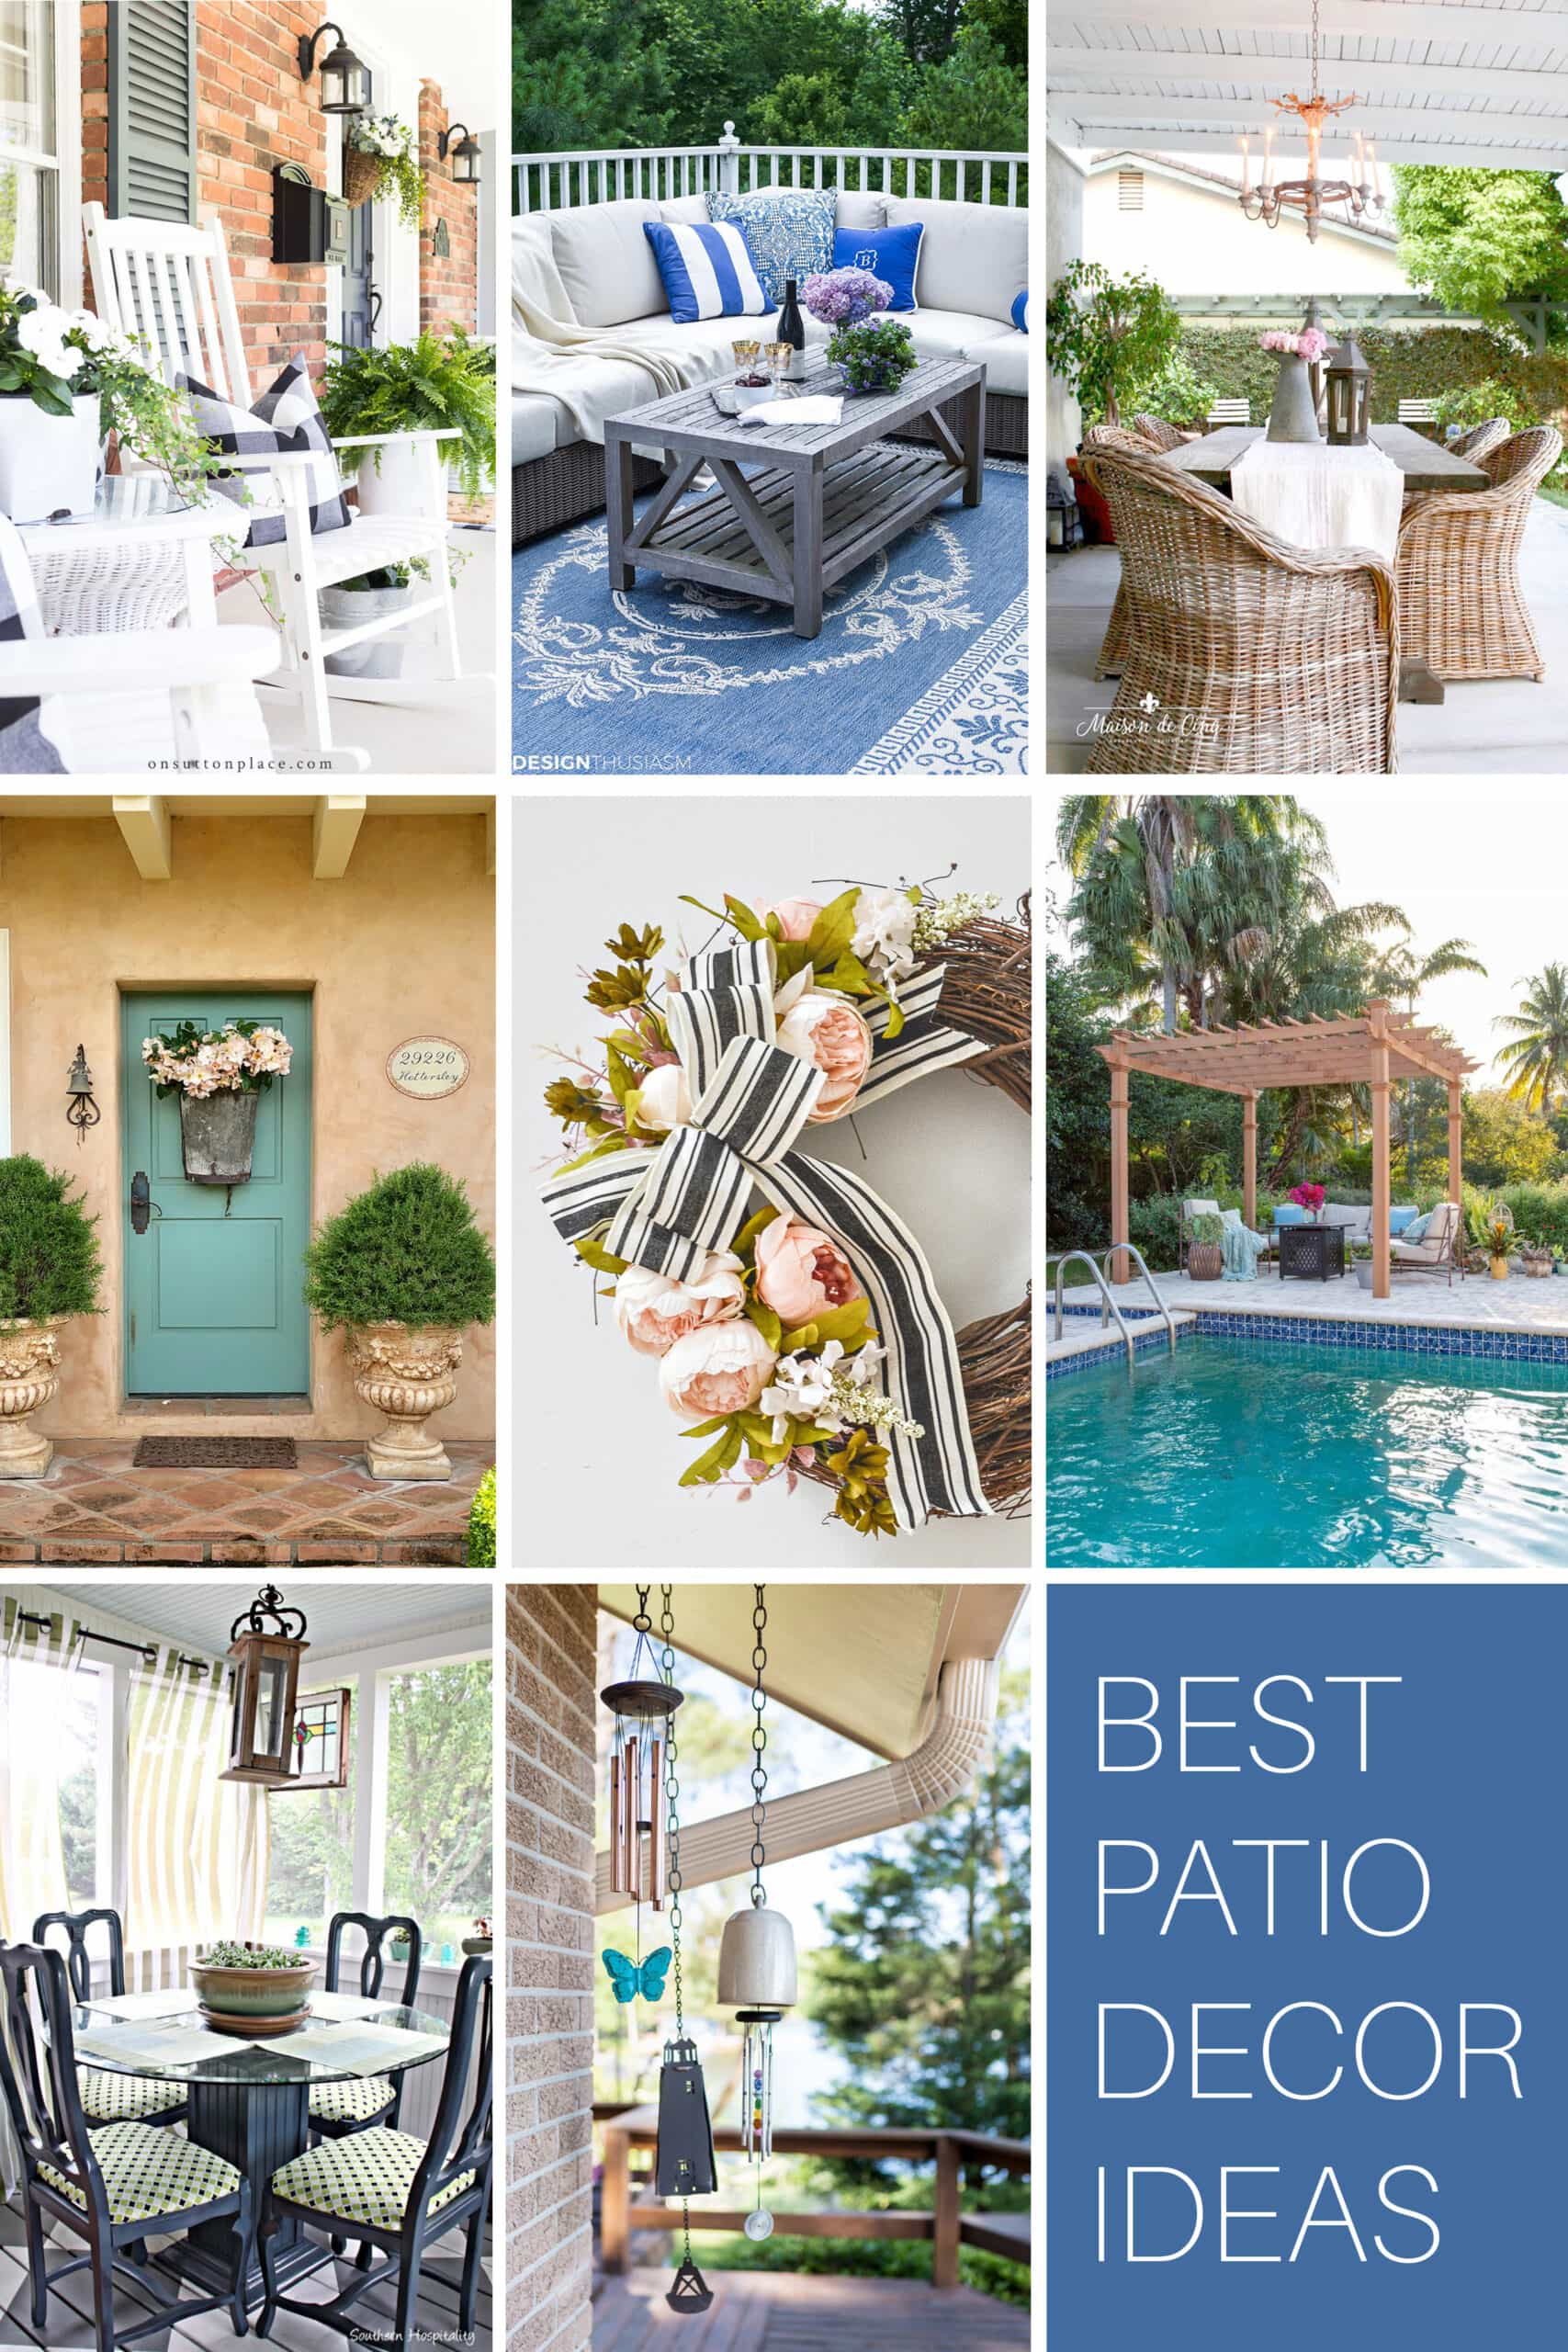 Best patio decor ideas